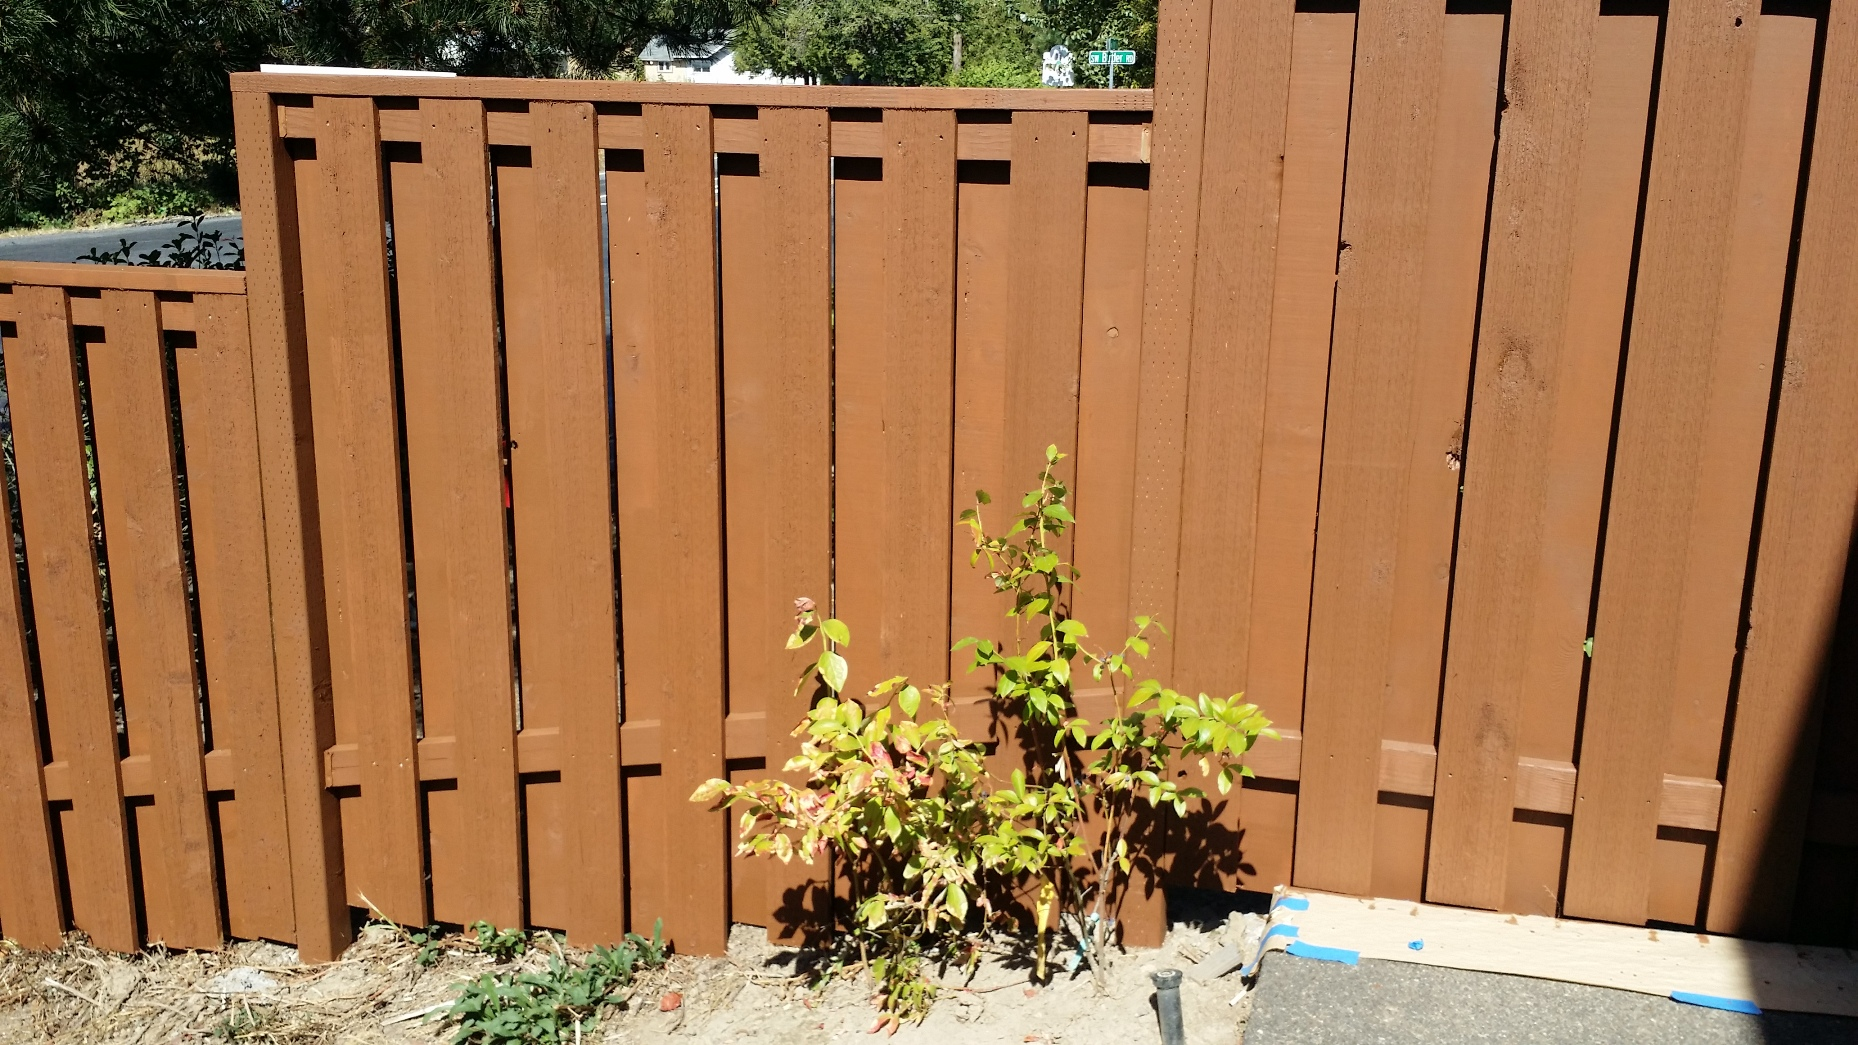 Jersey City fence repair quote, Jersey City fence contractor, Jersey City fencing company, Fence Repair Jersey City, Jersey City fencing repair